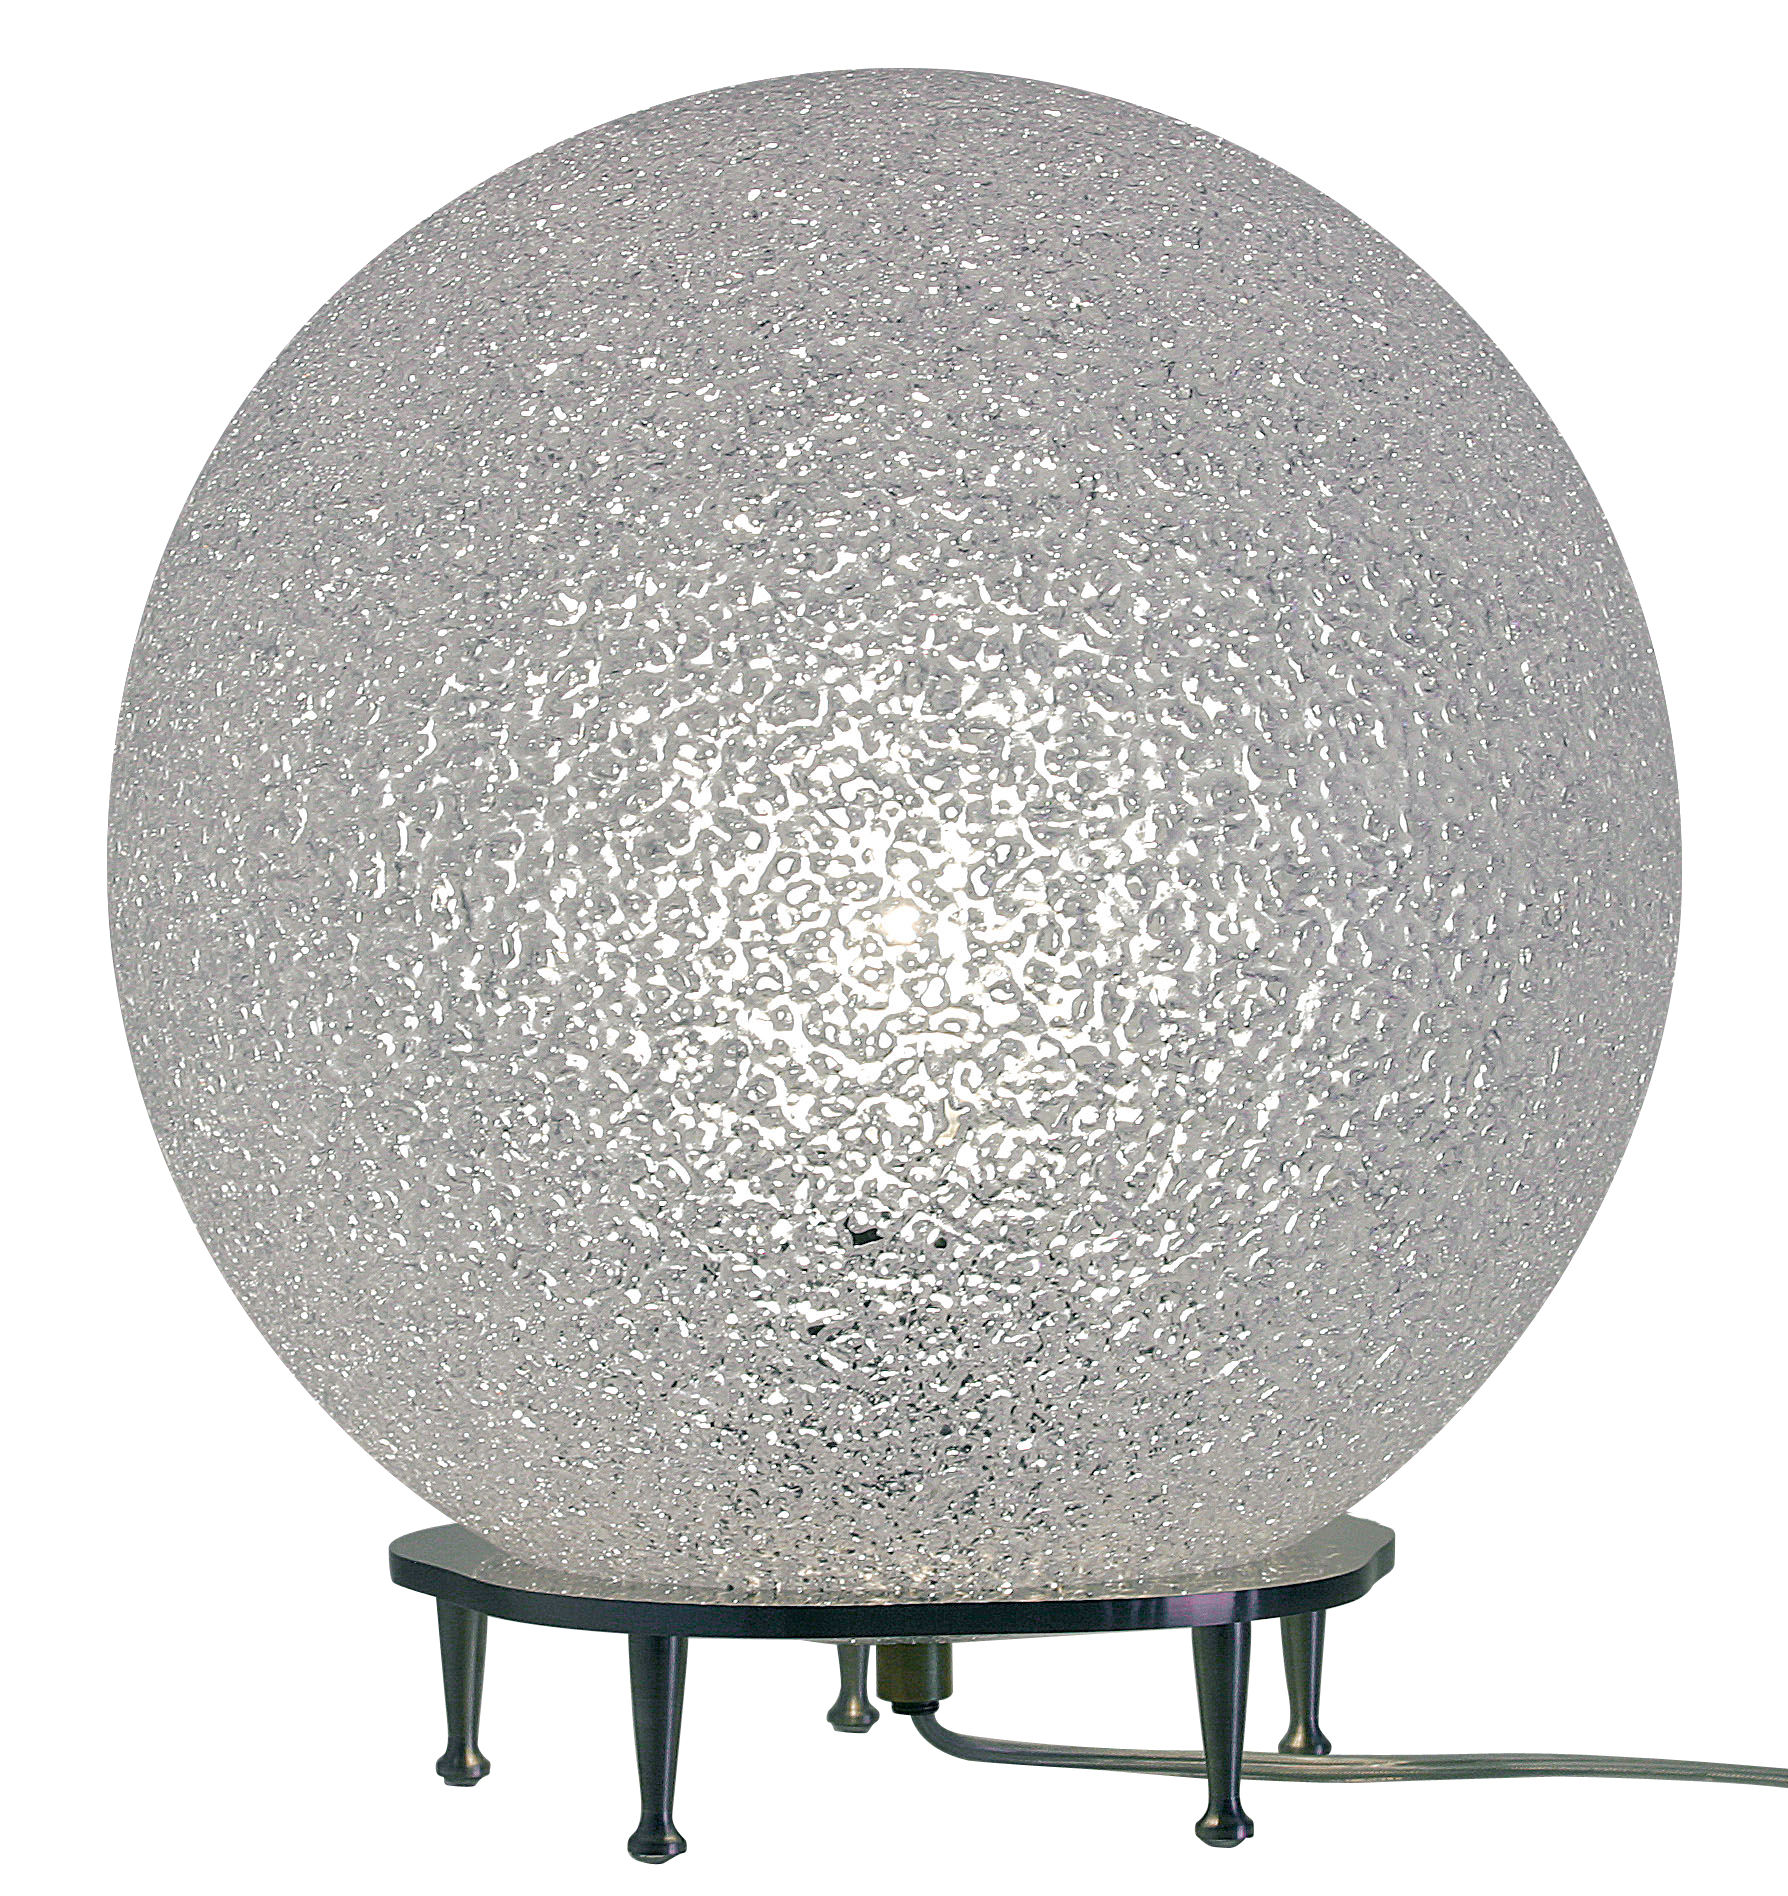 Lighting - Table Lamps - IceGlobe Floor lamp by Lumen Center Italia - Ø 57 cm - White - Metal, Polycarbonate